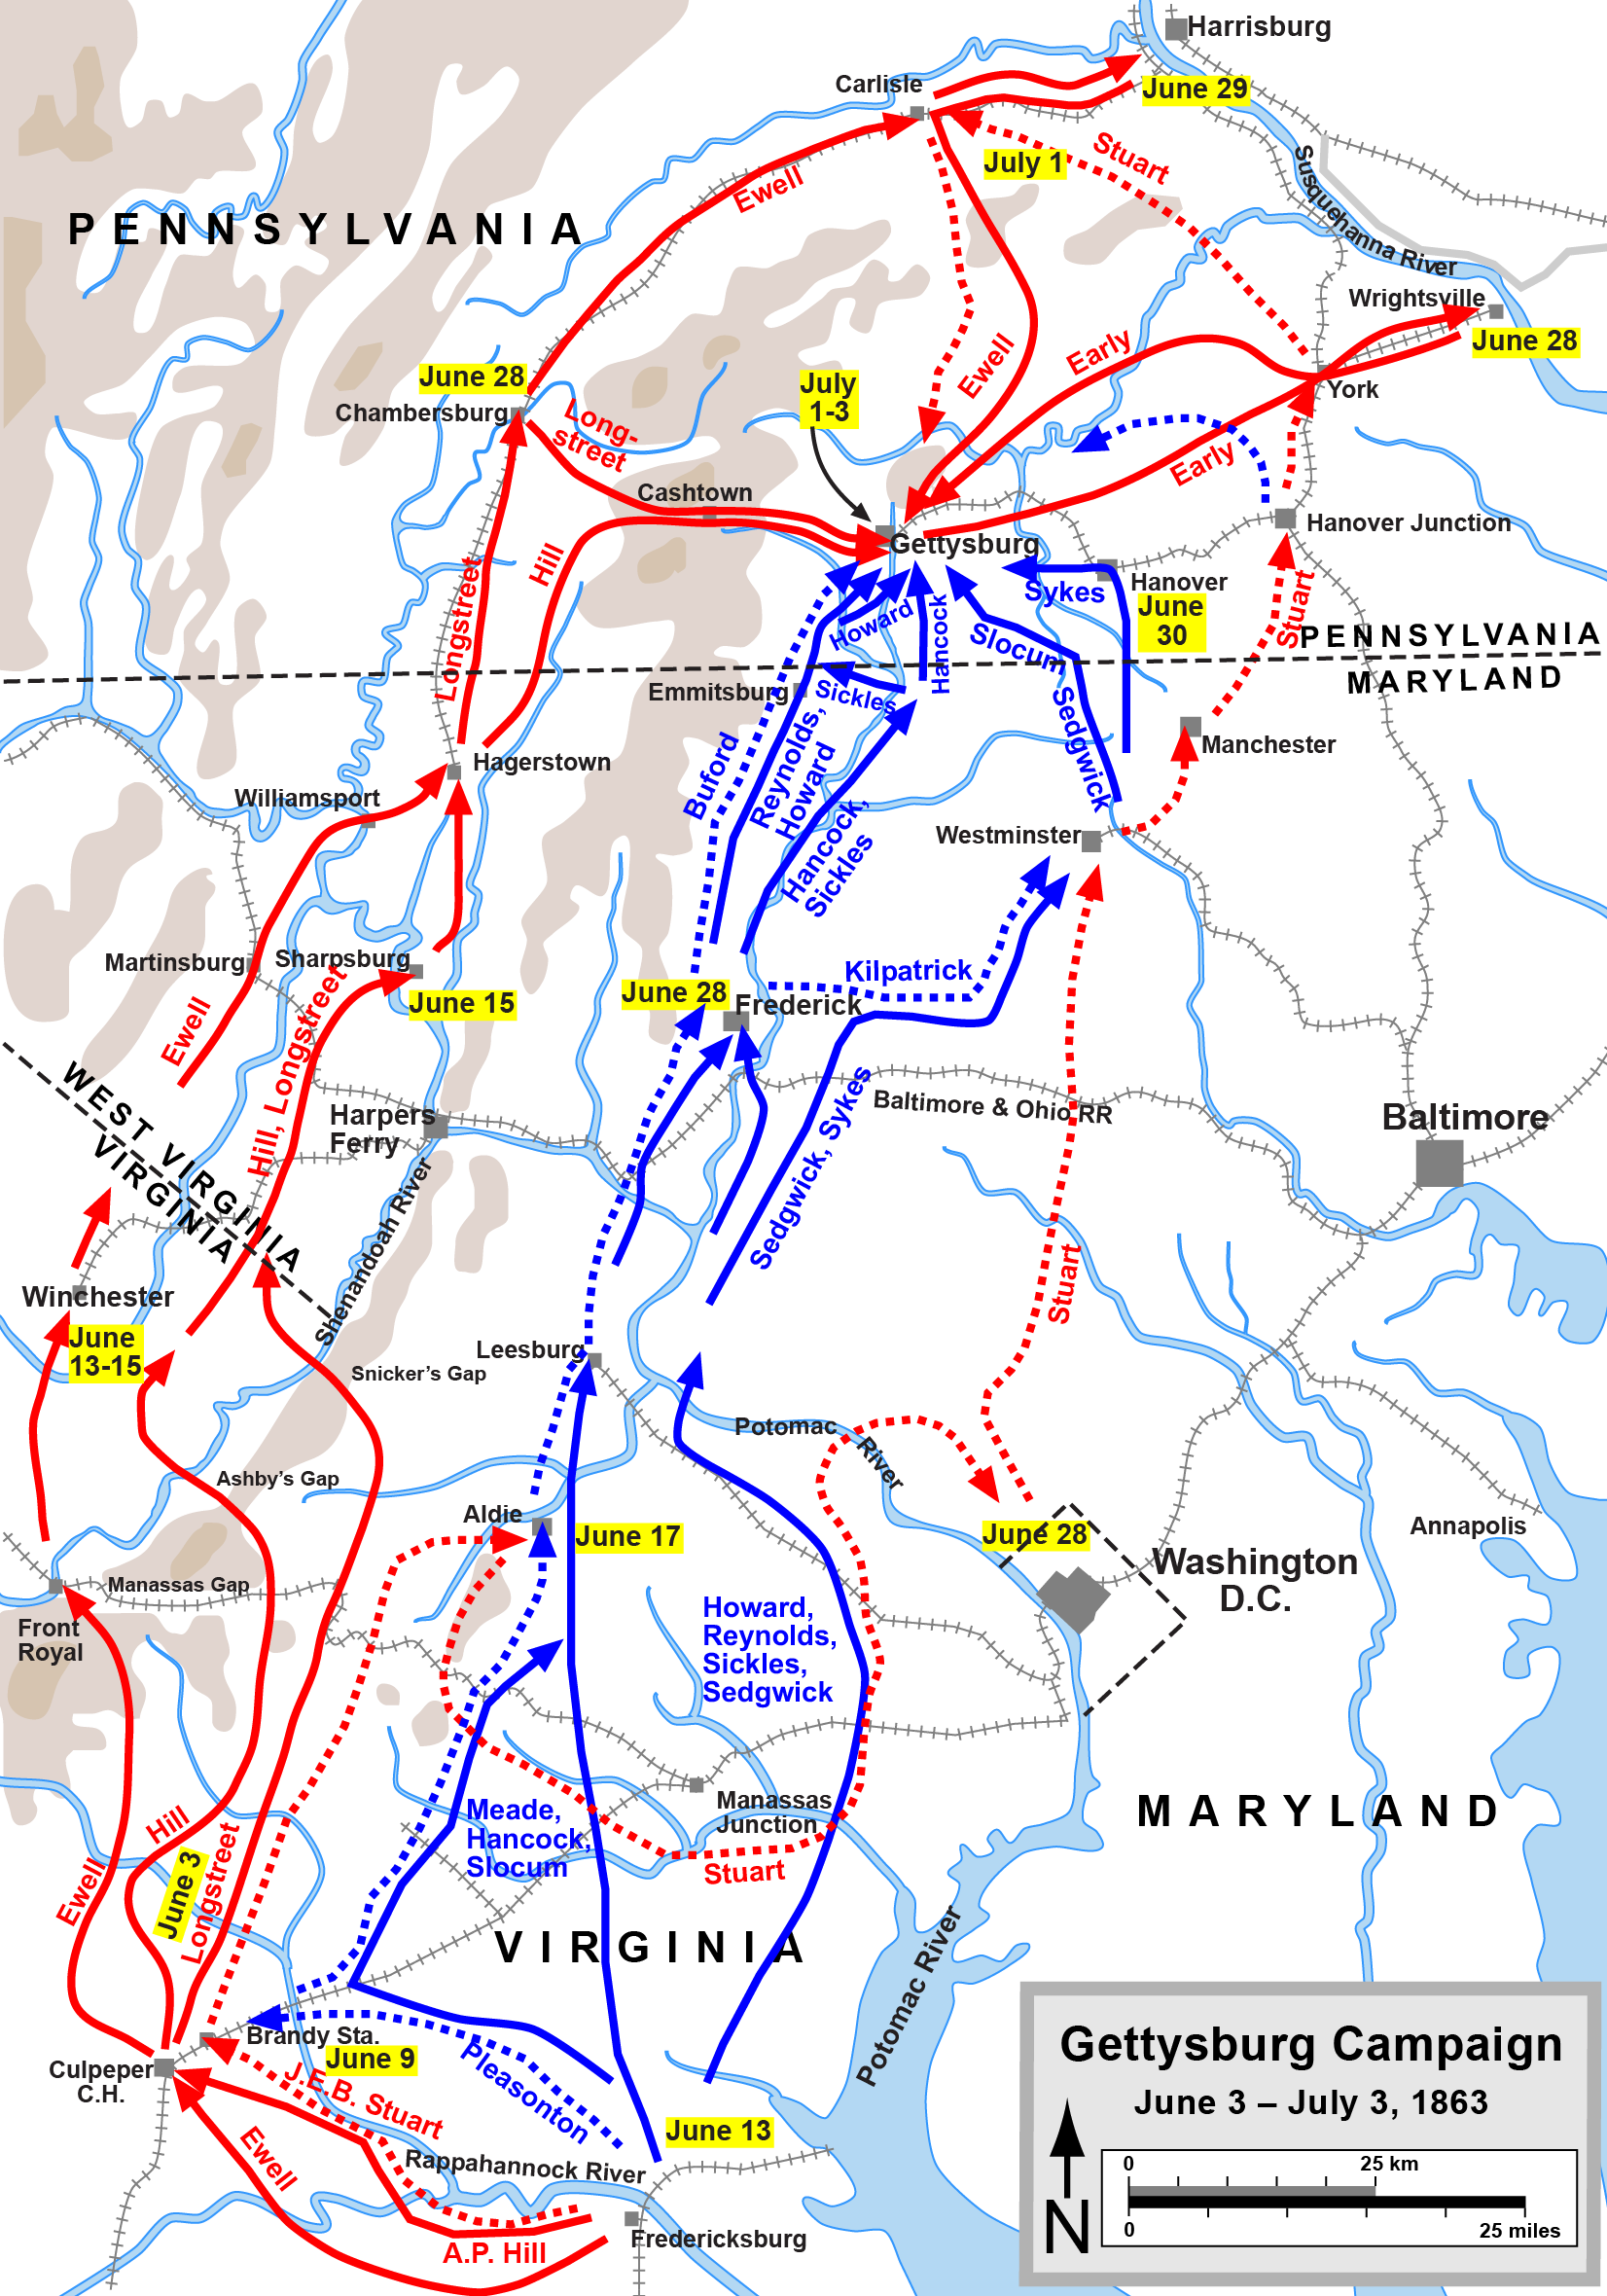 Map of Jeb Stuart's movements during the Gettysburg Campaign. Map courtesy of Hal Jespersen.